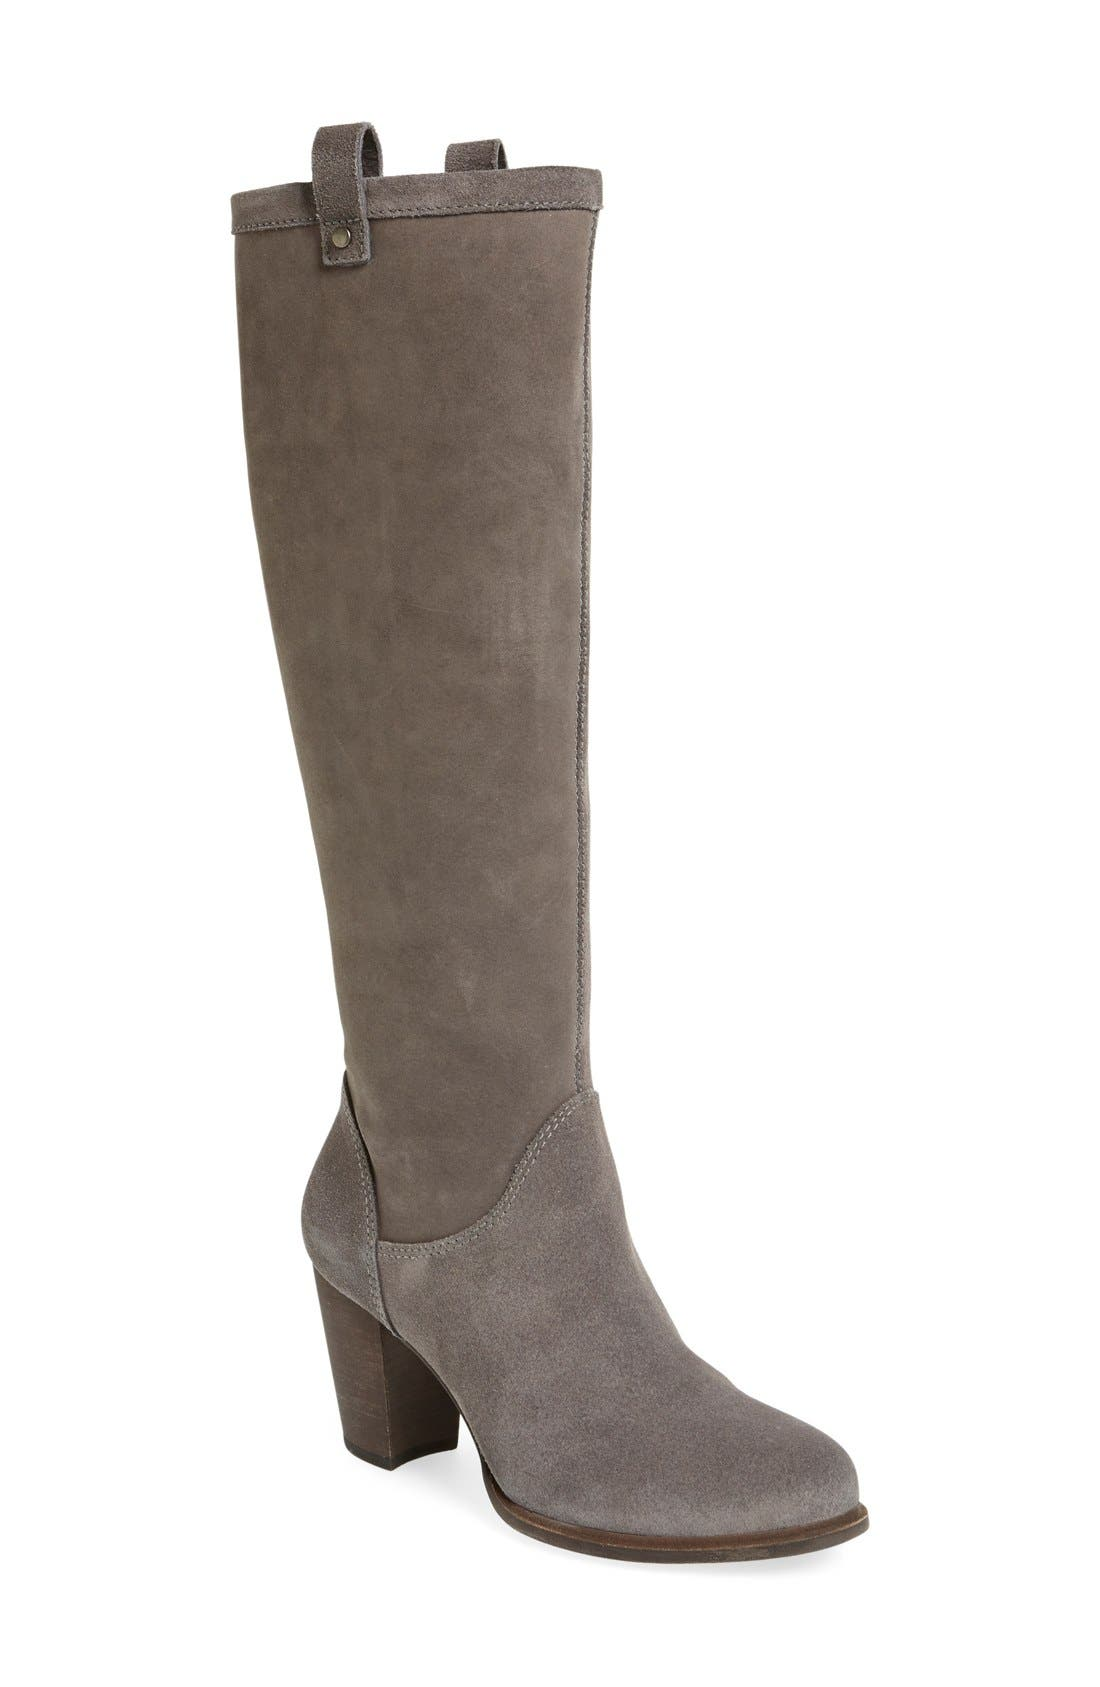 Main Image - UGG® 'Ava' Tall Water Resistant Suede Boot (Women)